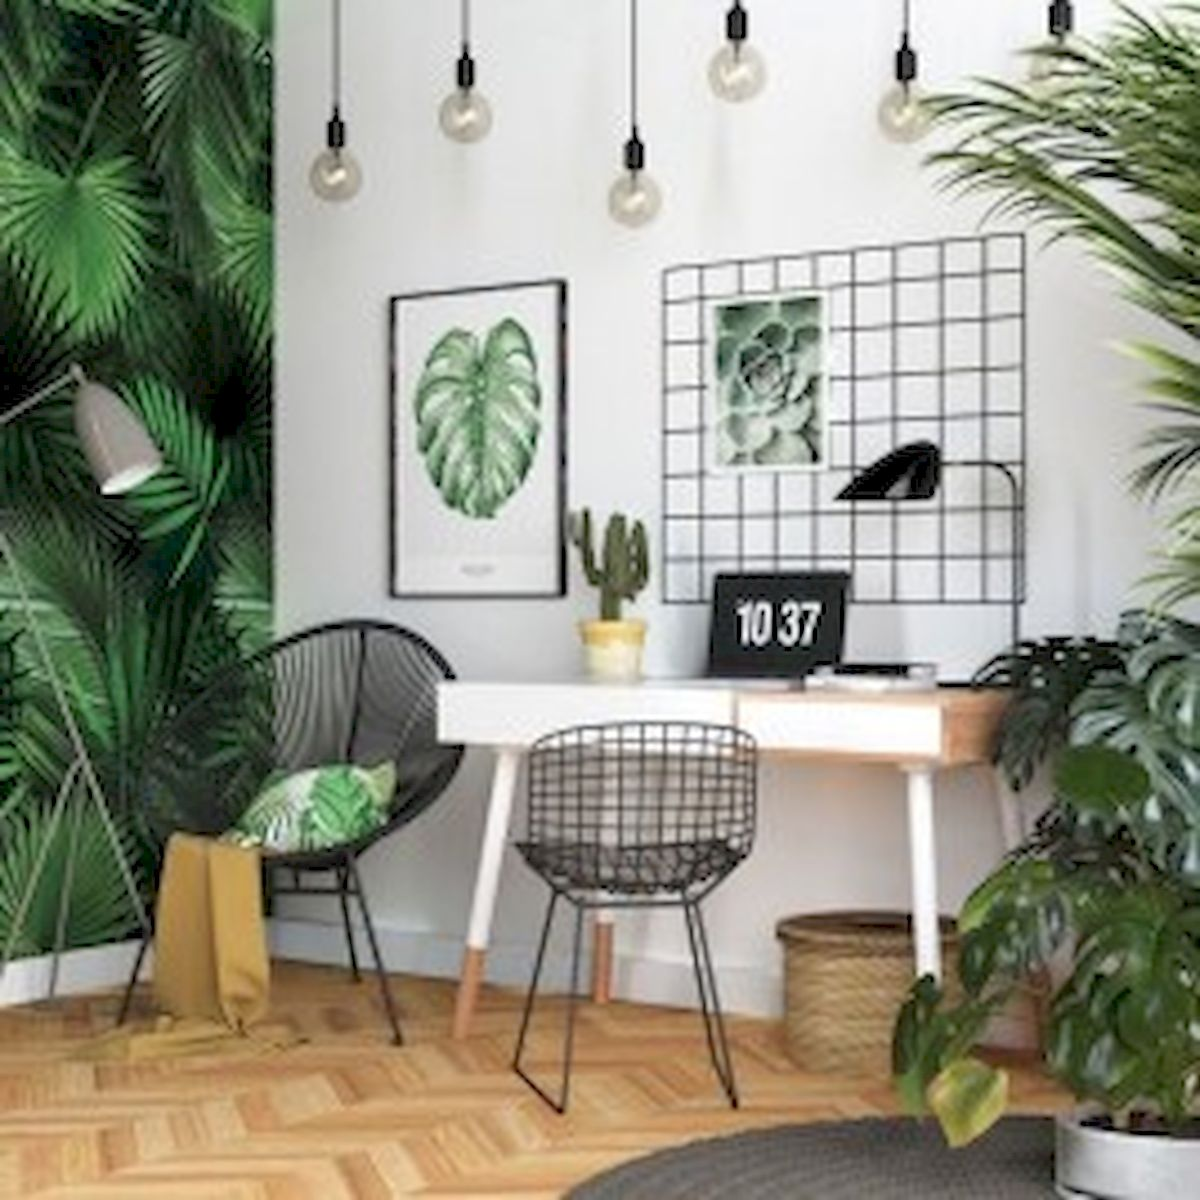 45 Adorable Home Office Decoration Ideas (40)